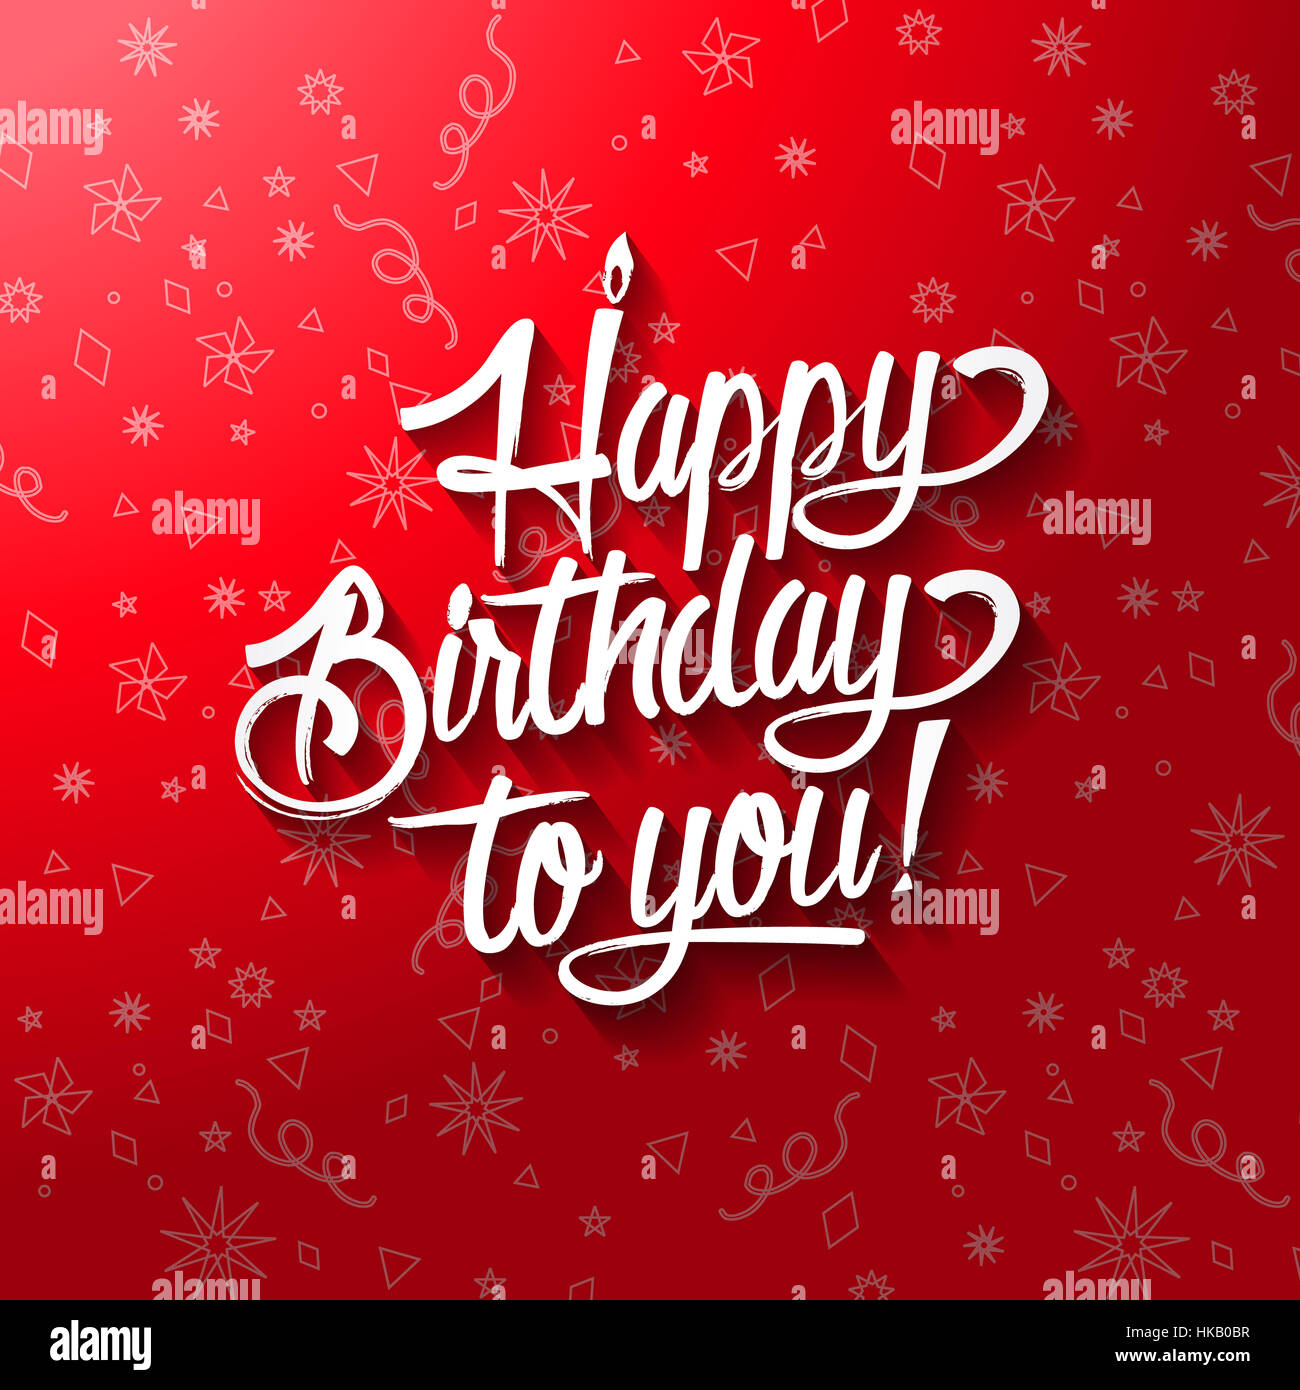 Happy birthday to you lettering text vector illustration birthday happy birthday to you lettering text vector illustration birthday greeting card design kristyandbryce Image collections